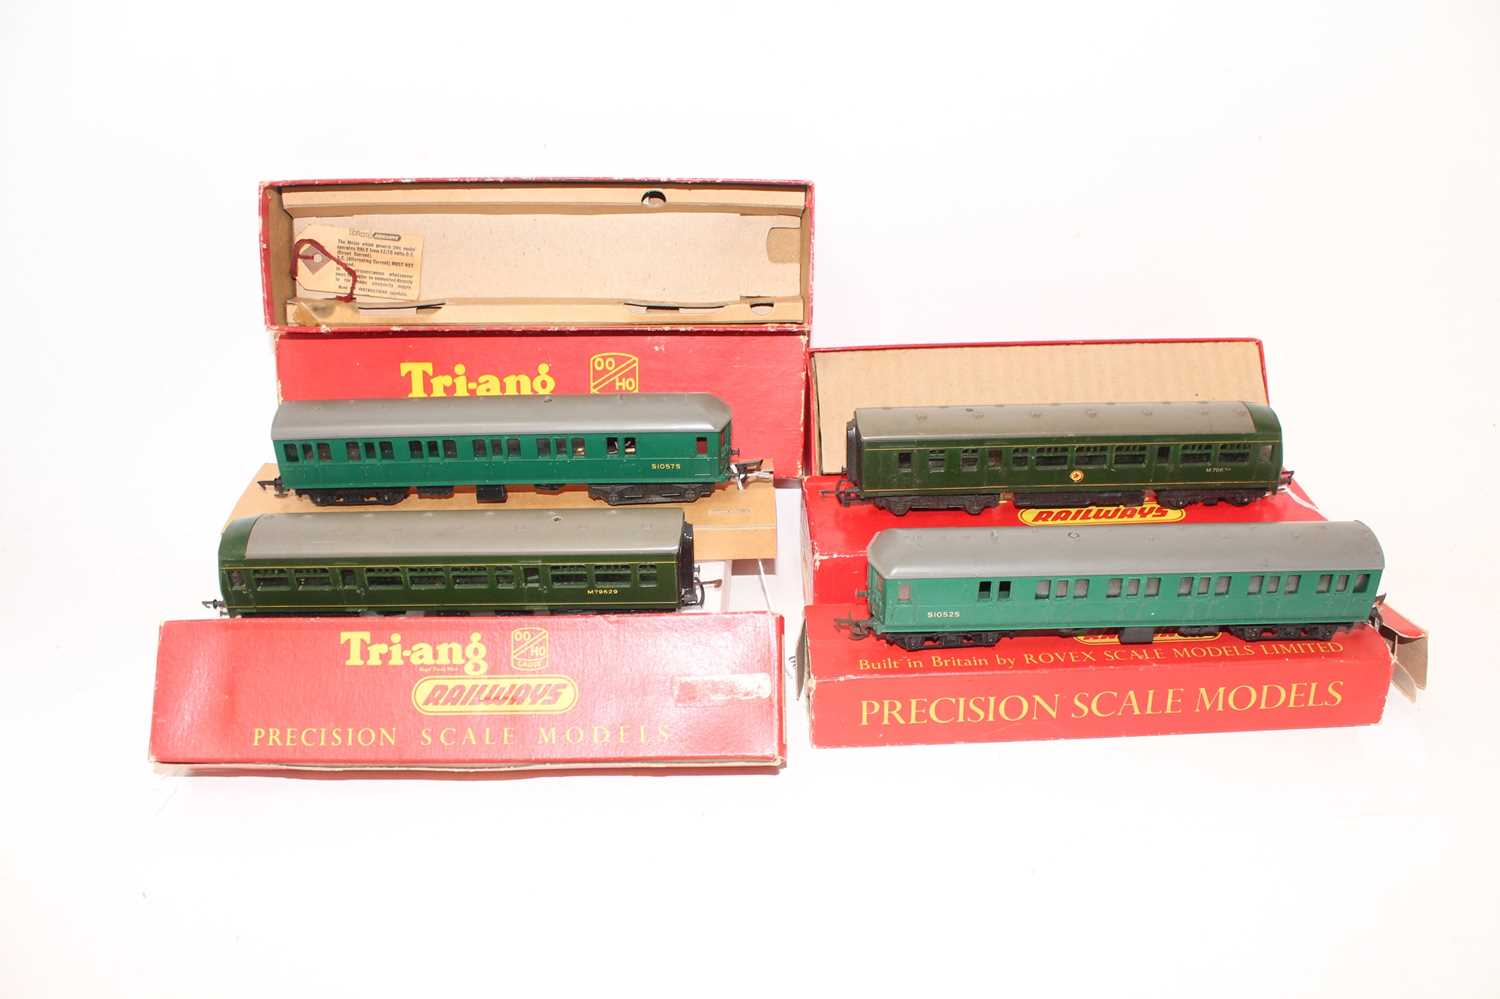 Triang class 4-sub EMU green R156/225 S1052S & S1057S without decals (G-VG) R156 (BE) complete